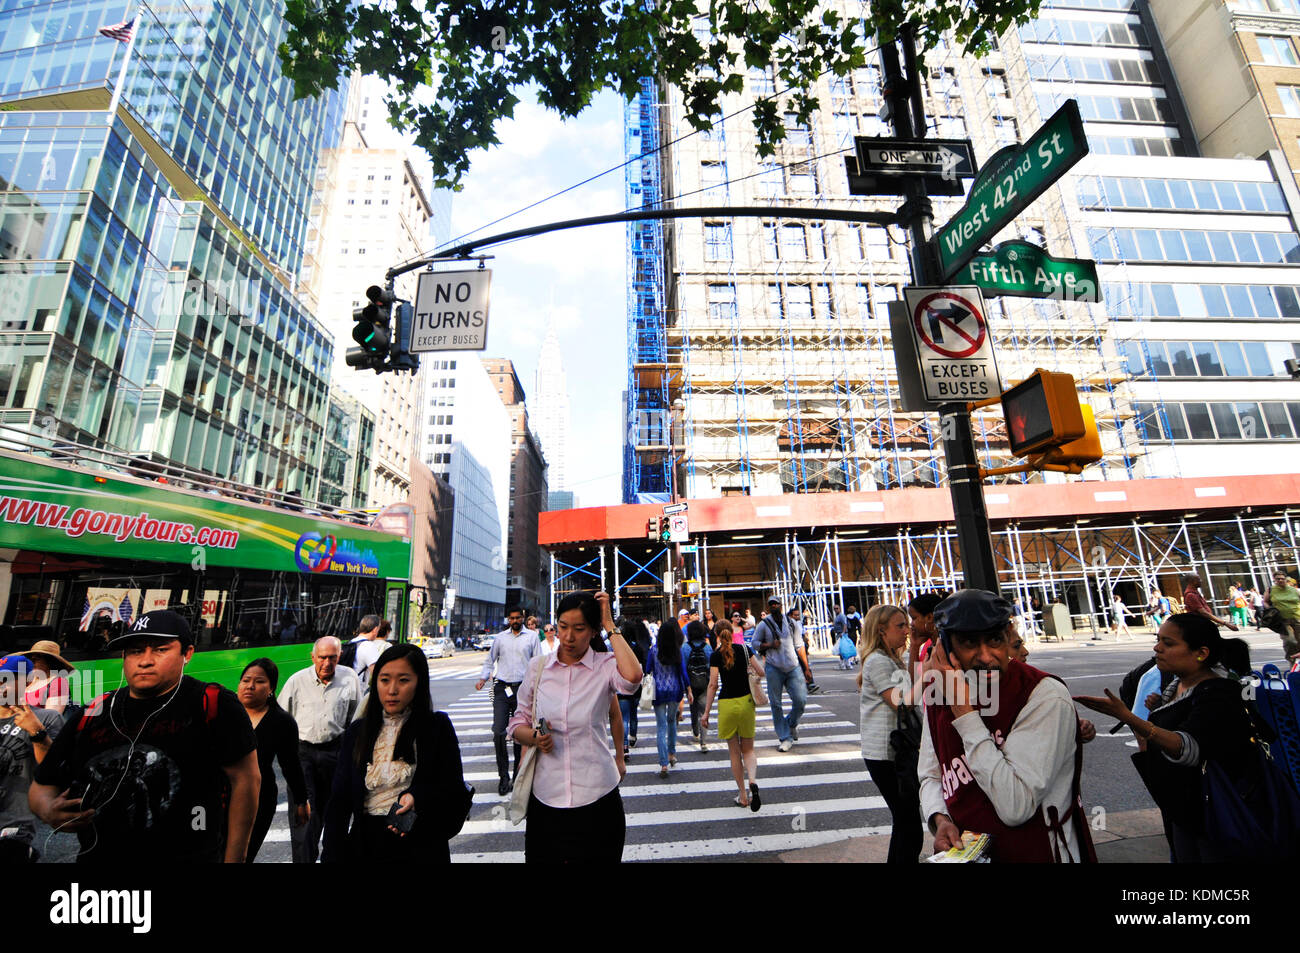 Pedestrians crossing the Fifth Ave along West 42nd St in Manhattan. - Stock Image